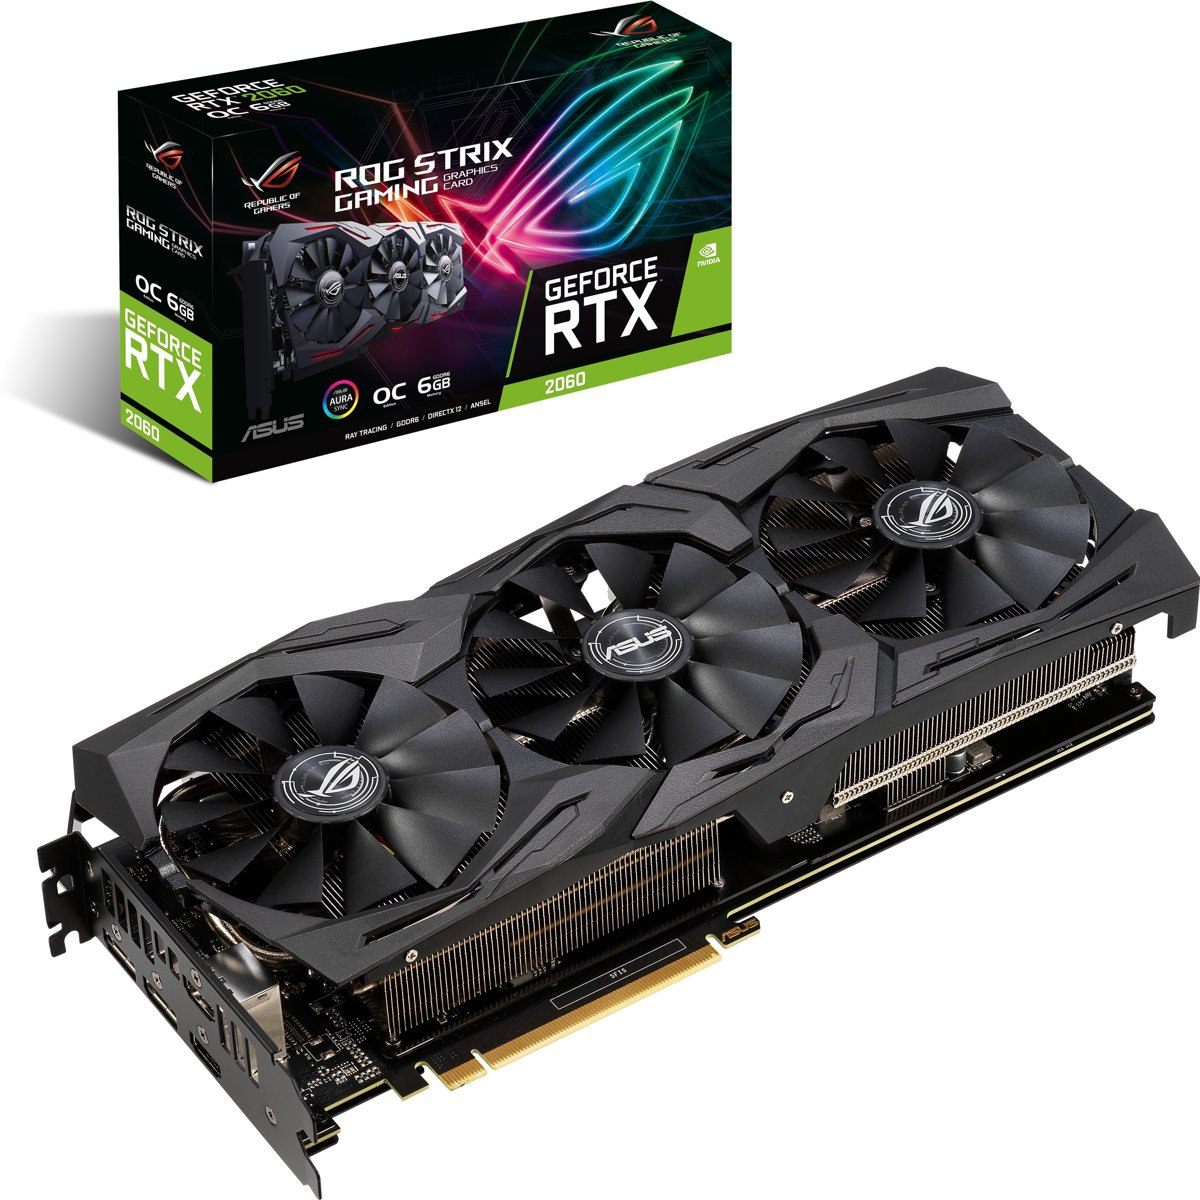 ROG -STRIX-RTX2060-O6G-GAMING GeForce RTX 2060 6 GB GDDR6